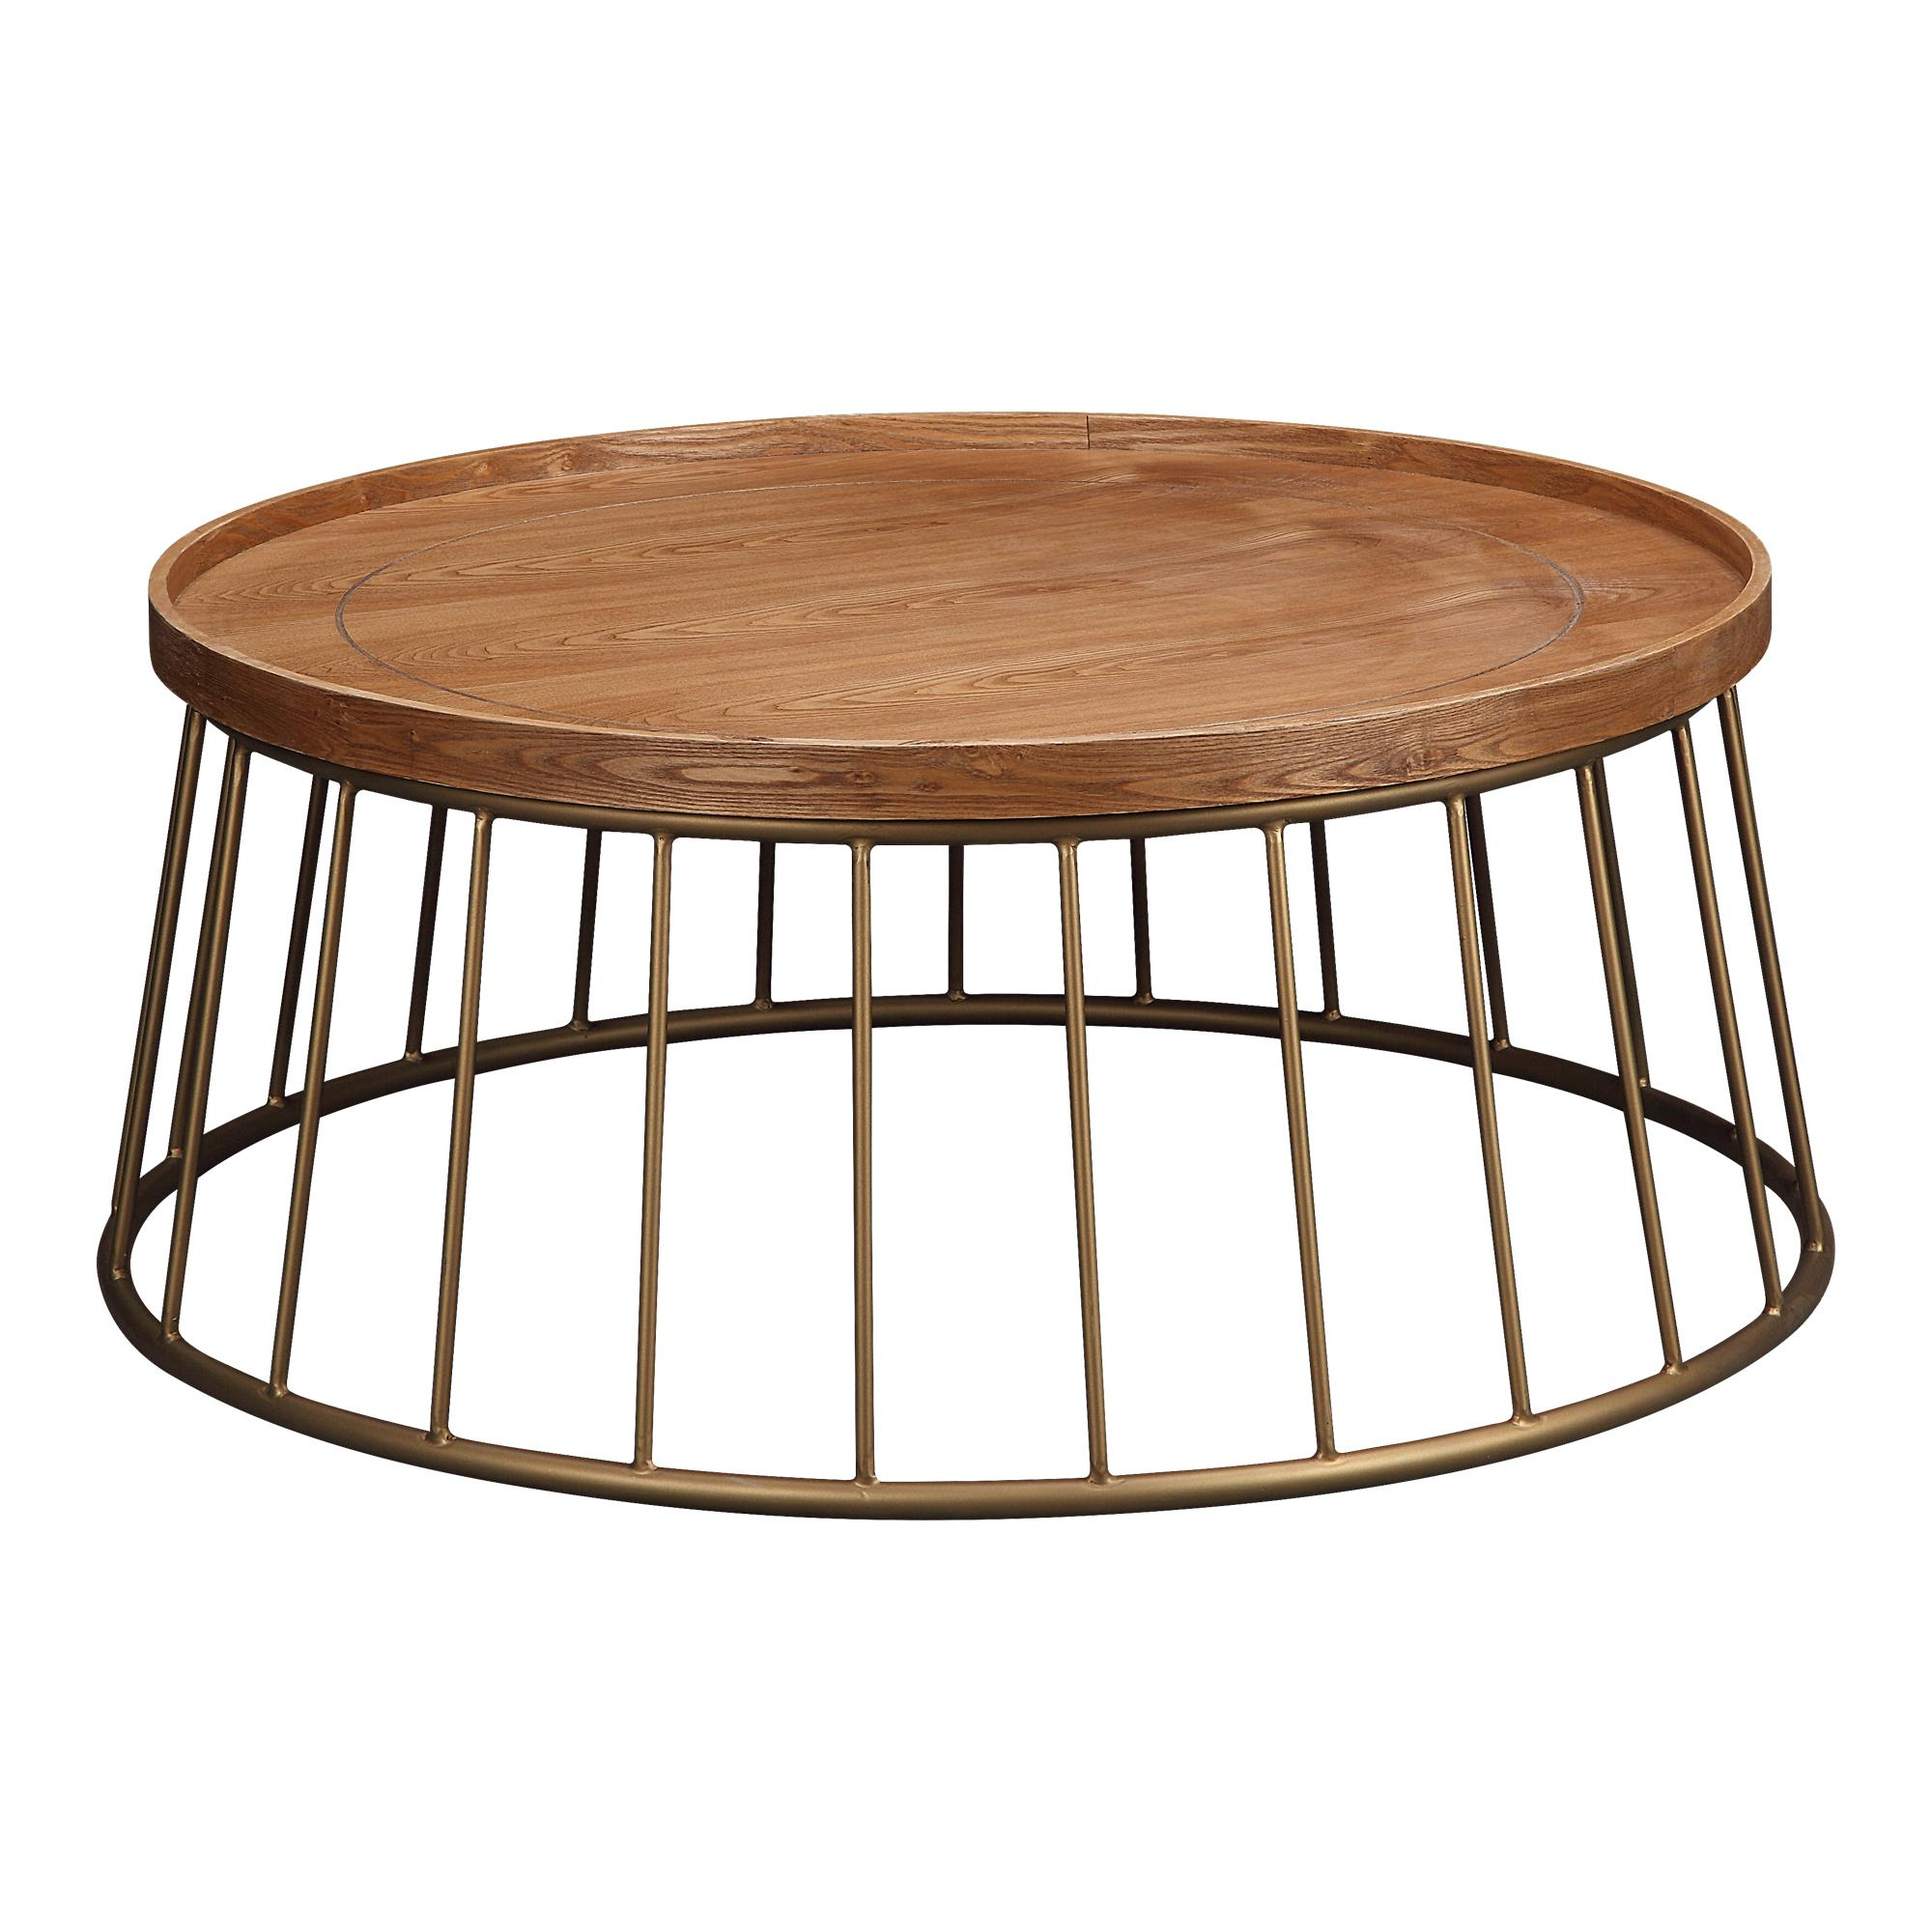 Magnificent Moes Home Norgran Light Brown Wood Round Coffee Table Home Interior And Landscaping Ologienasavecom